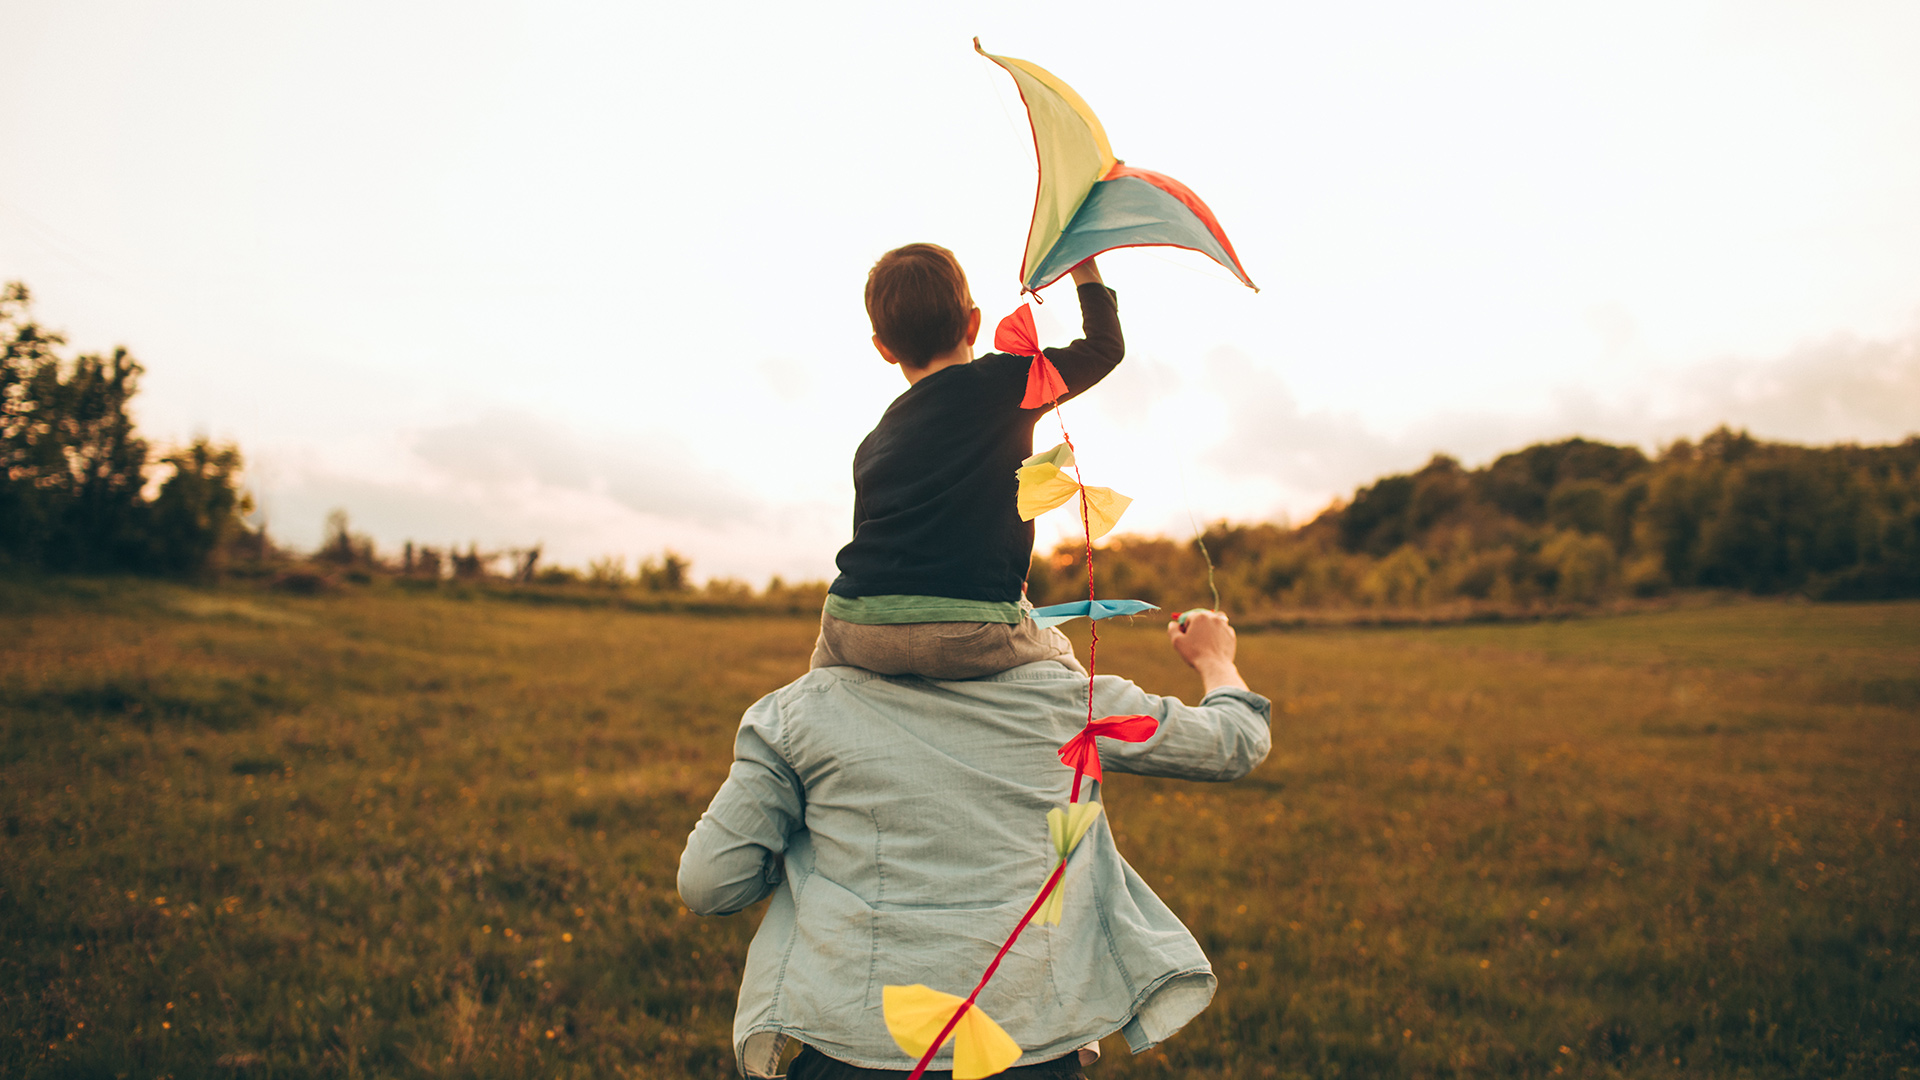 Diamond Crest is conveniently located near parks perfect for flying a kite